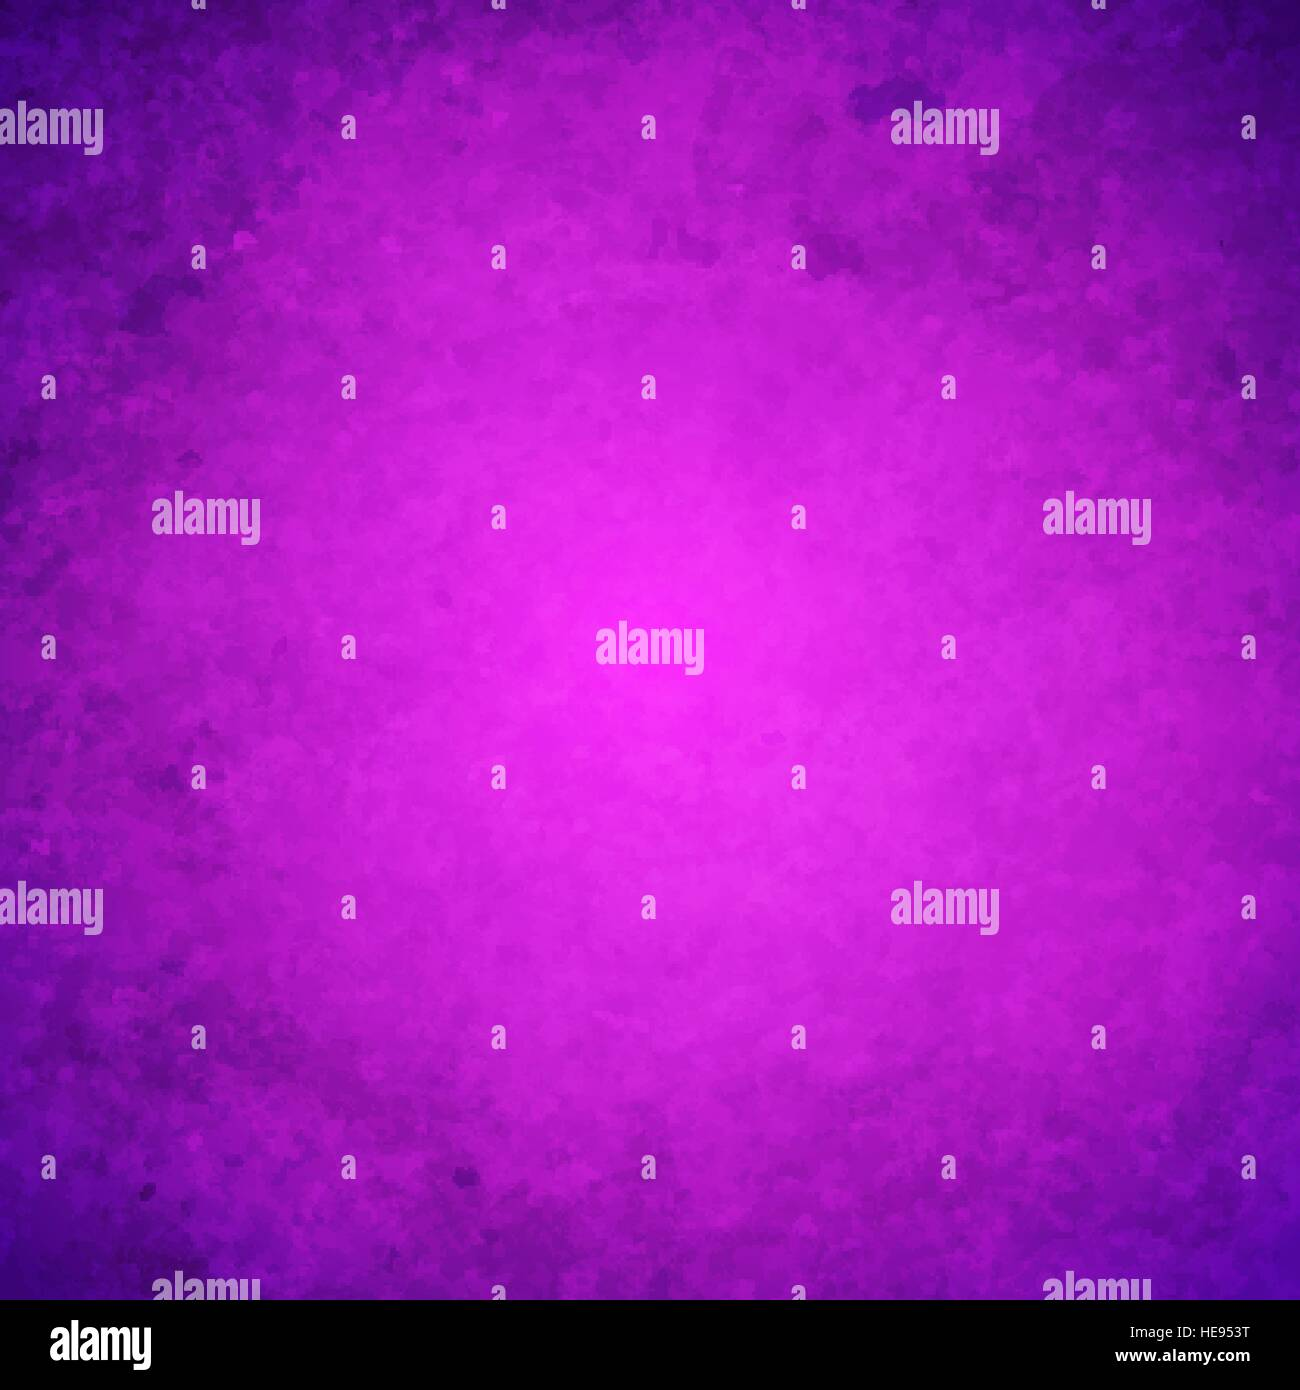 abstract vector grunge background - magenta and violet - Stock Image